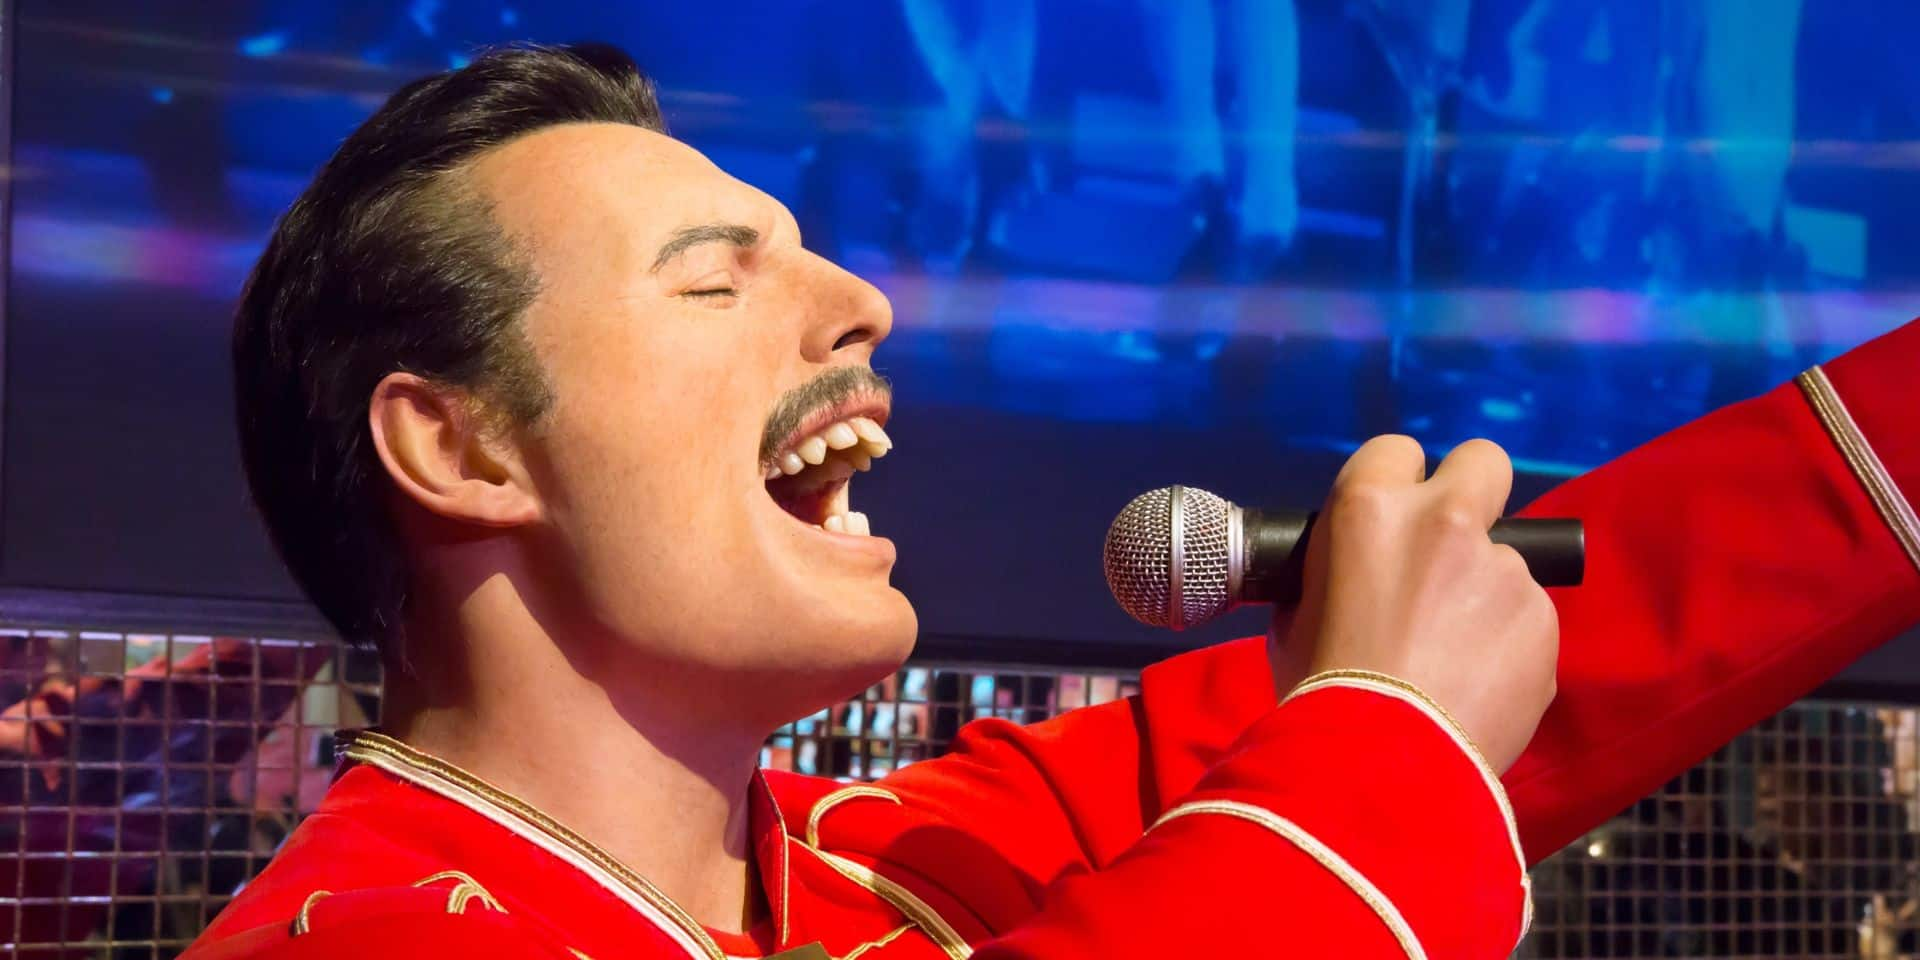 """CONCOURS : DH Radio t'offre 2x2 places pour """"One Night Of Queen"""""""